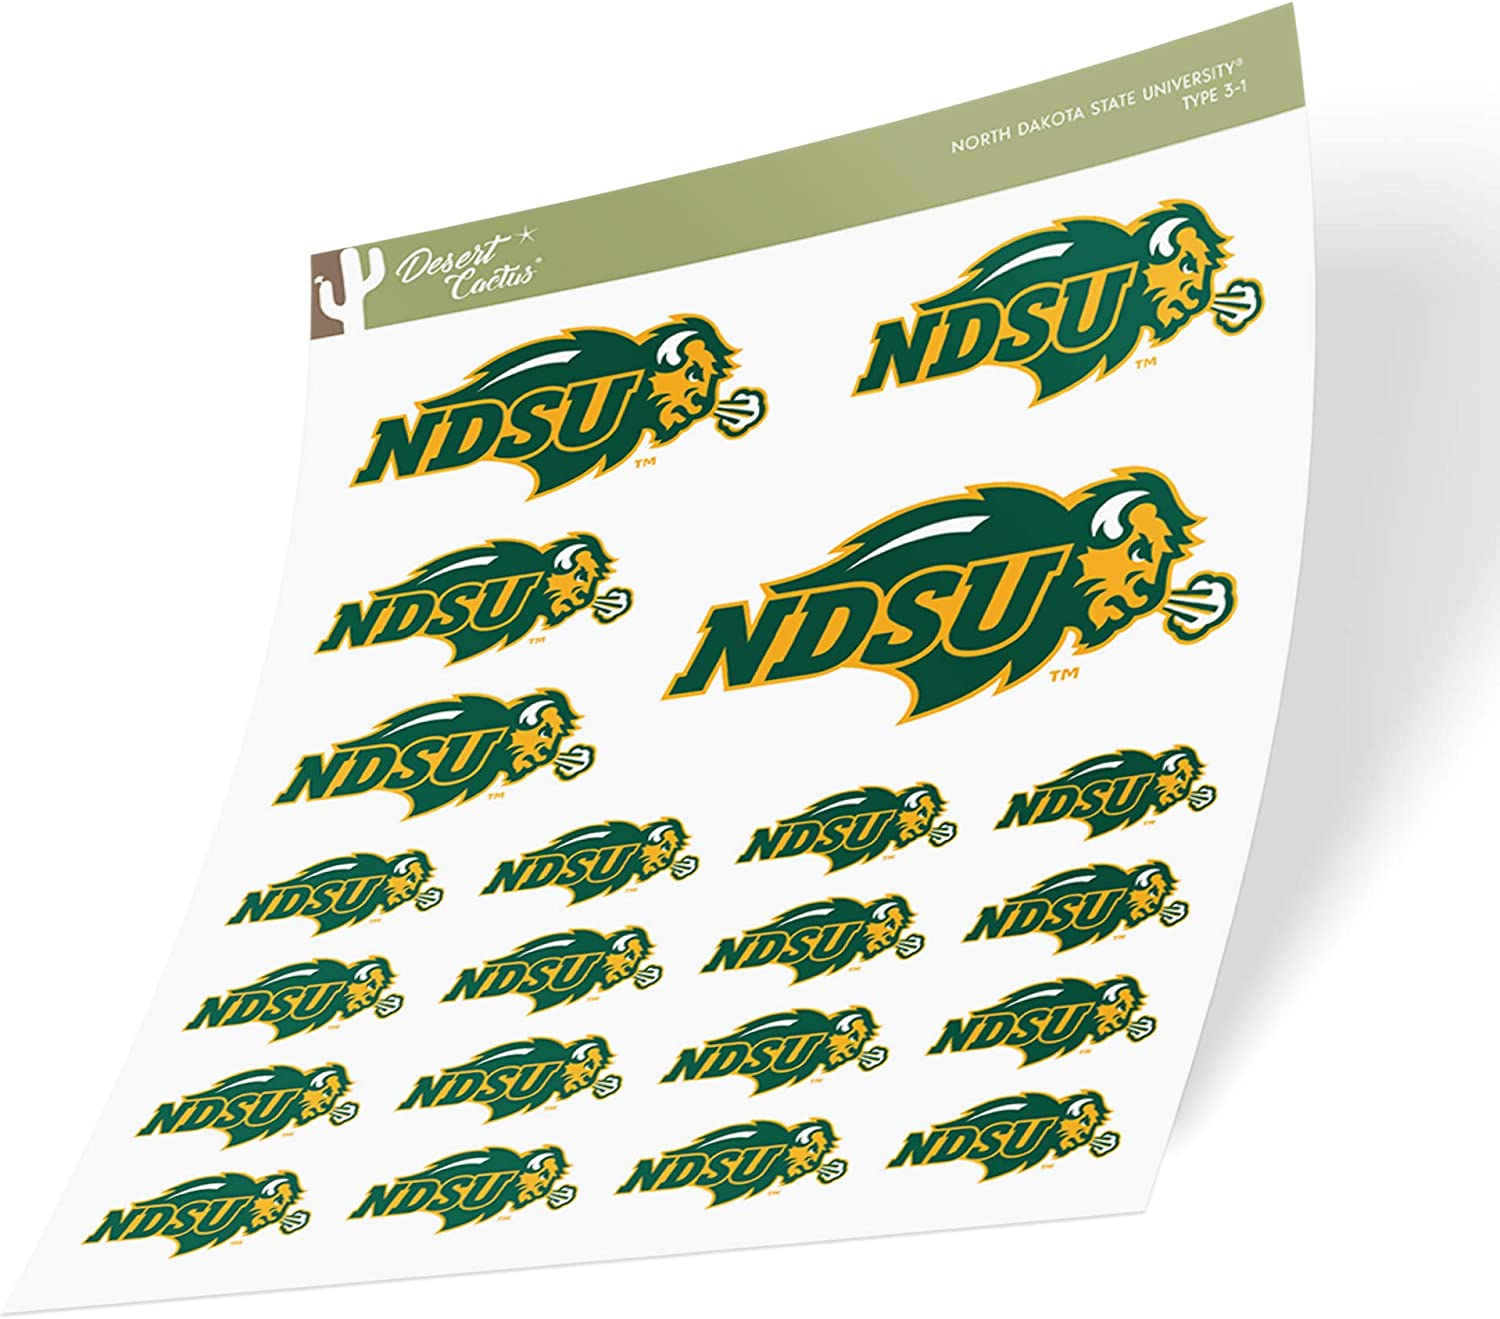 15 Inch Sticker North Dakota State University NDSU Bison Thundering Herd NCAA Name Logo Vinyl Decal Laptop Water Bottle Car Scrapbook